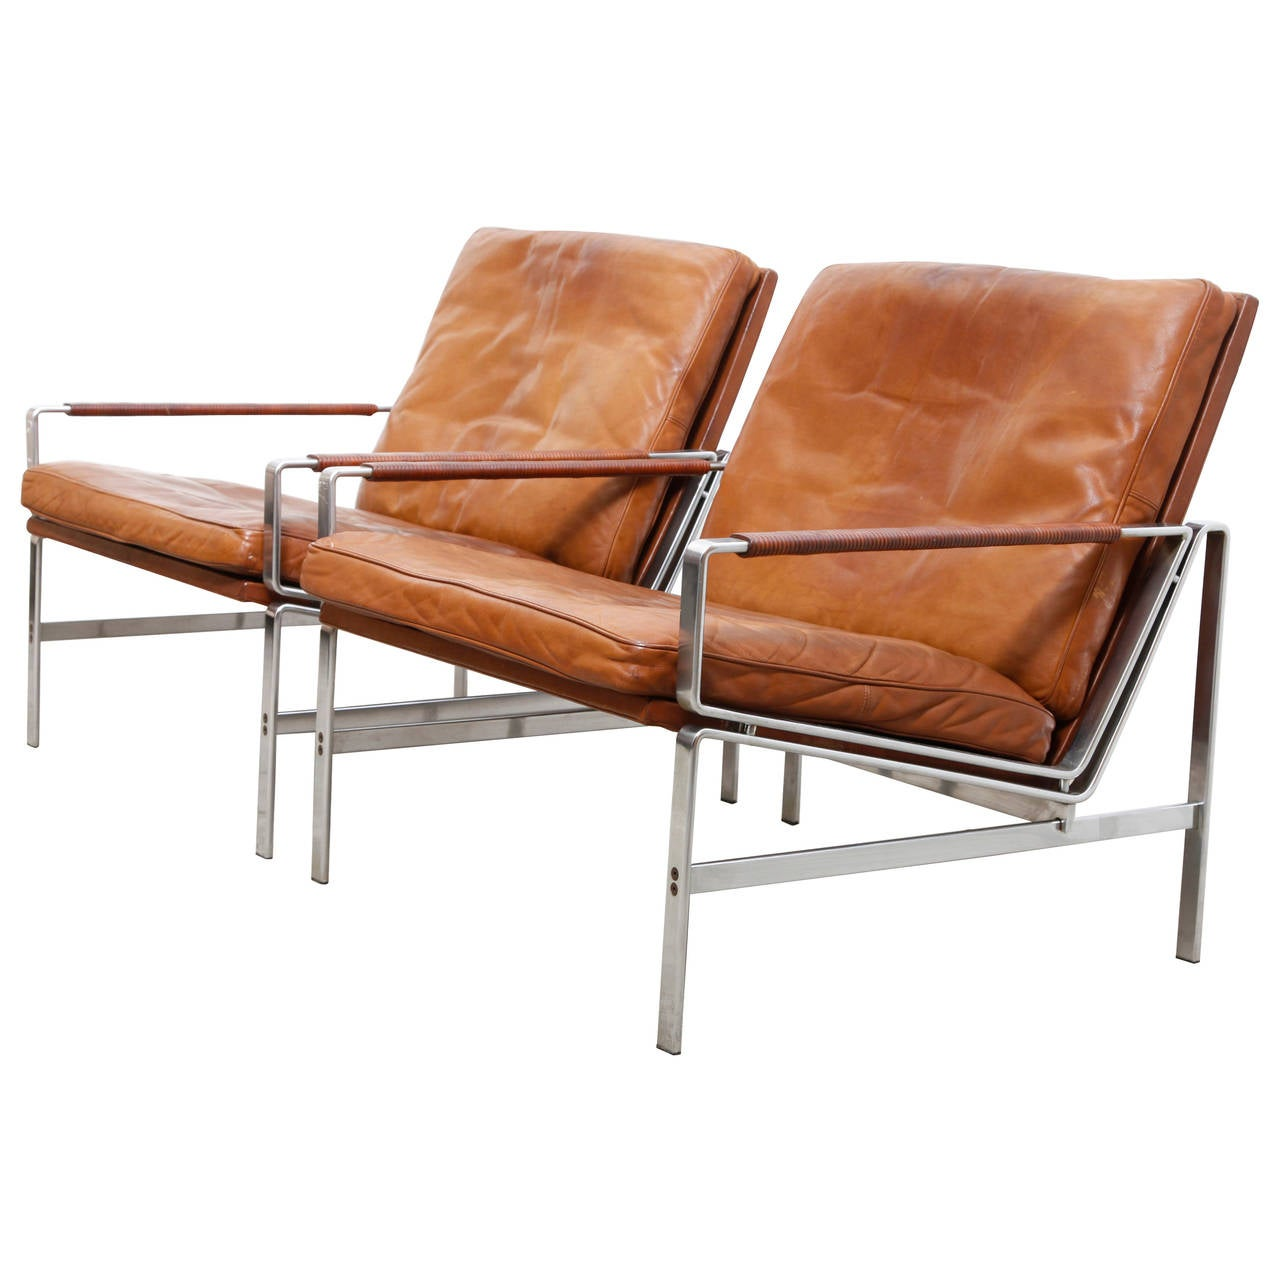 243e71253765 Lounge Armchairs Modell FK 6720 by Preben Fabricius and Jørgen Kastholm For  Sale